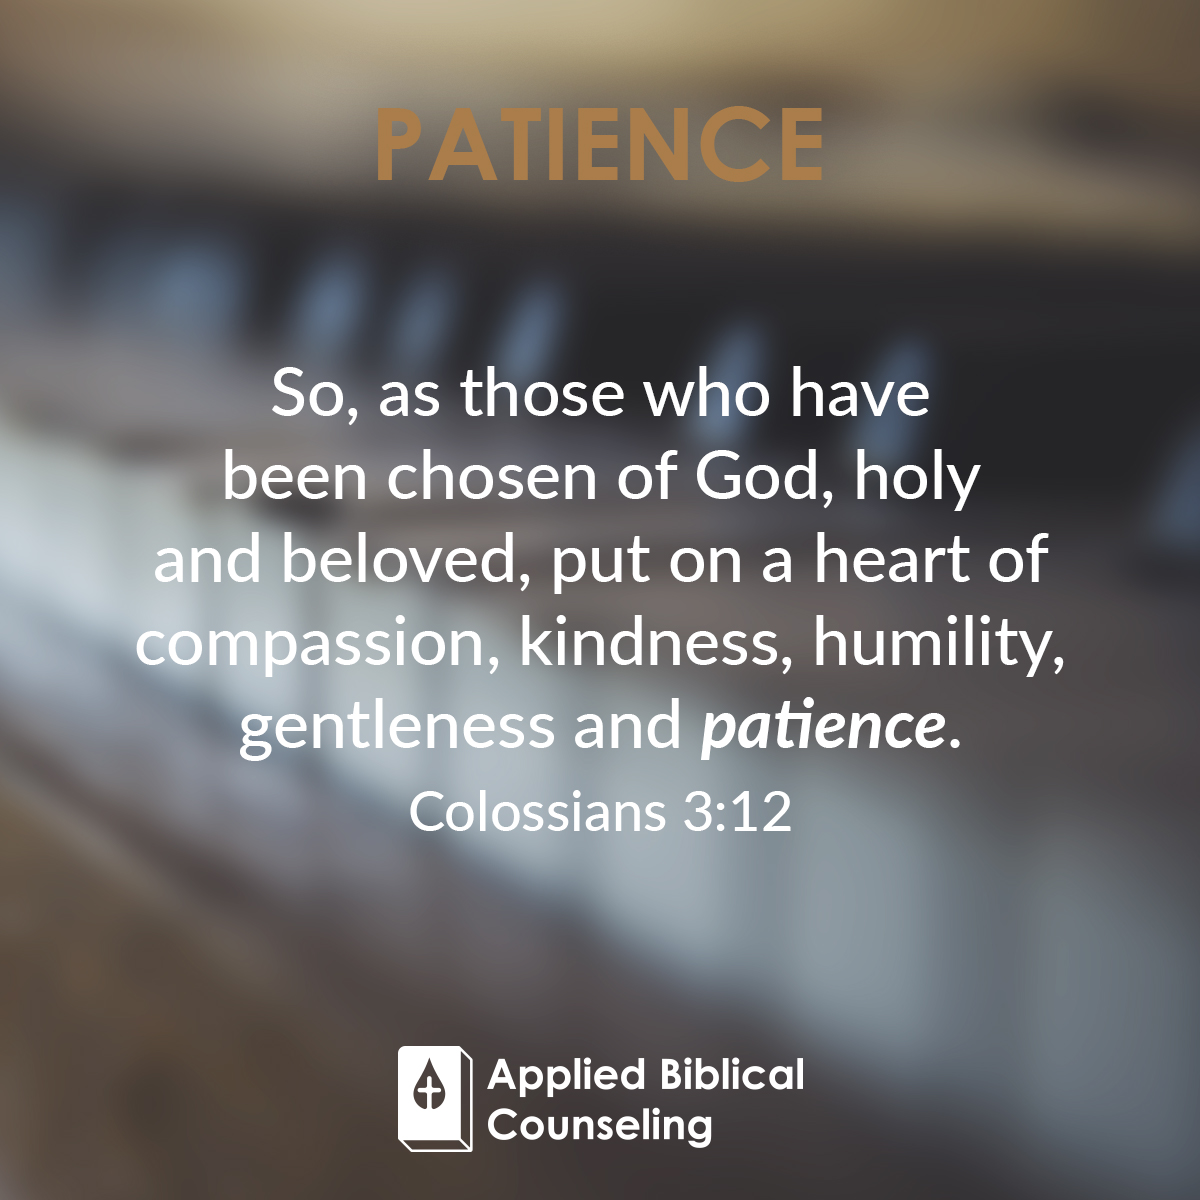 Applied Biblical Counseling Facebook w26 Patience 1